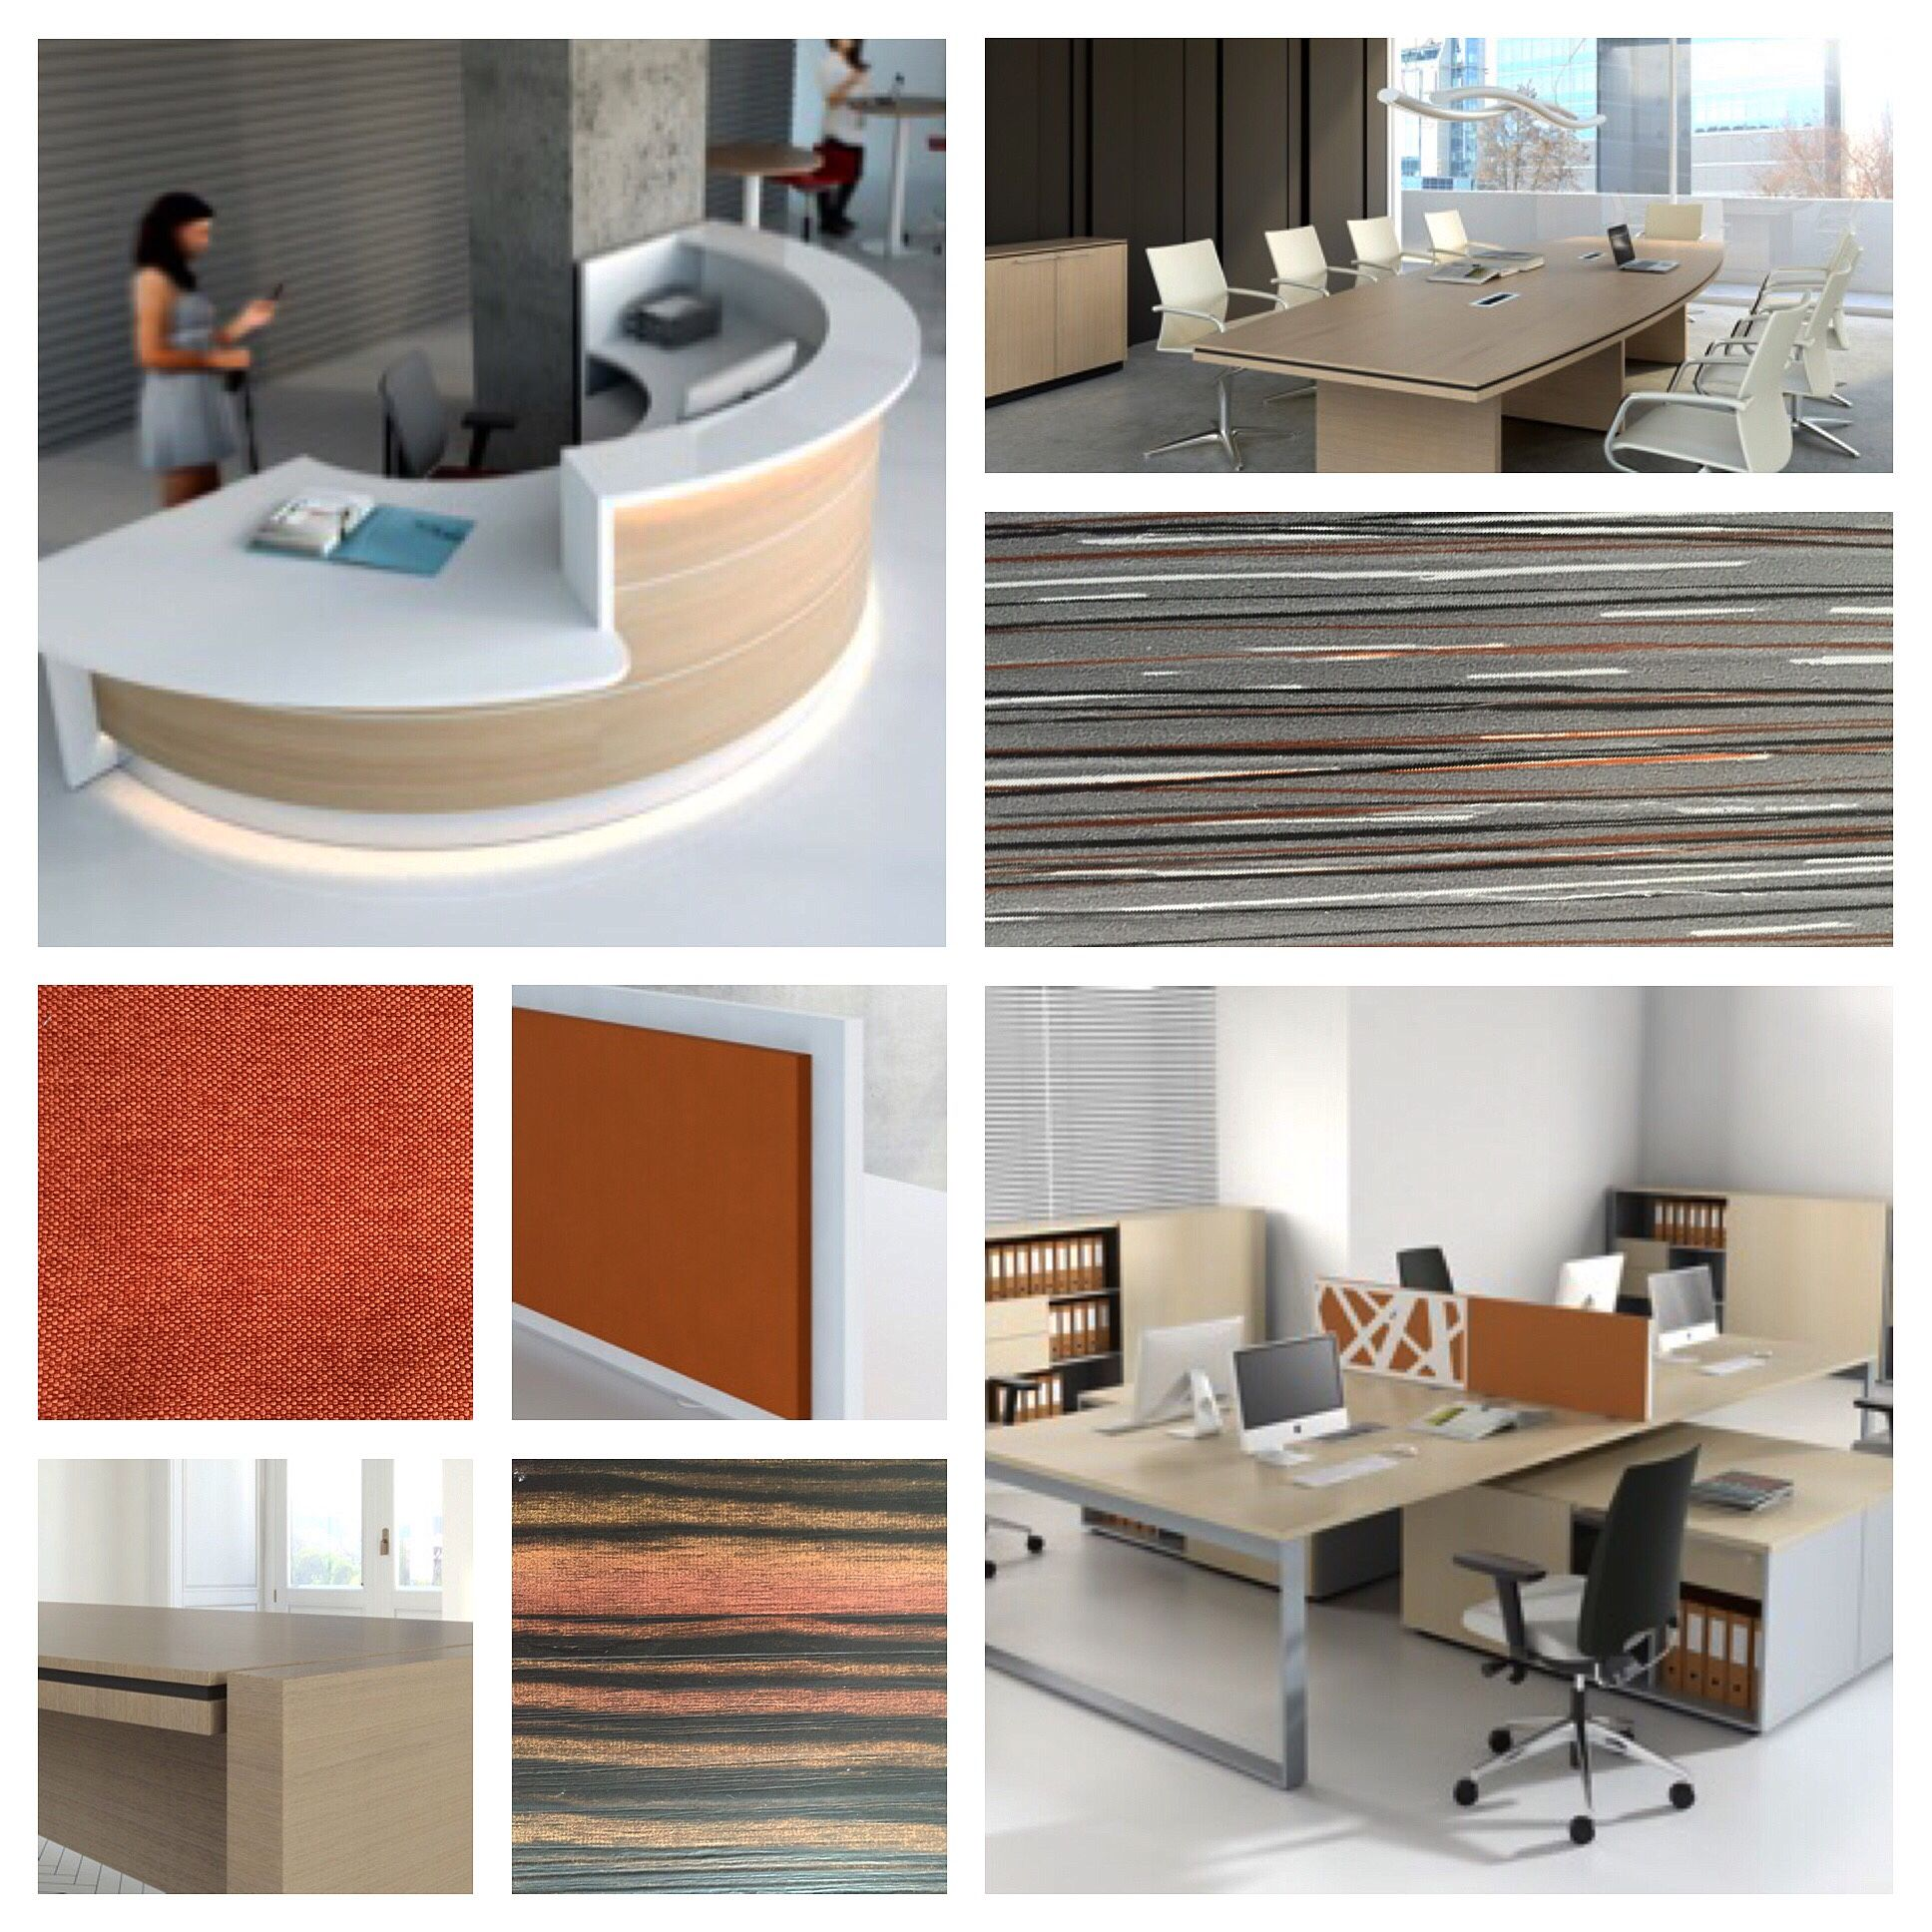 office color palette. Office Color Palette. Design An Space With Light Wood Tones And A Warm Colour Palette